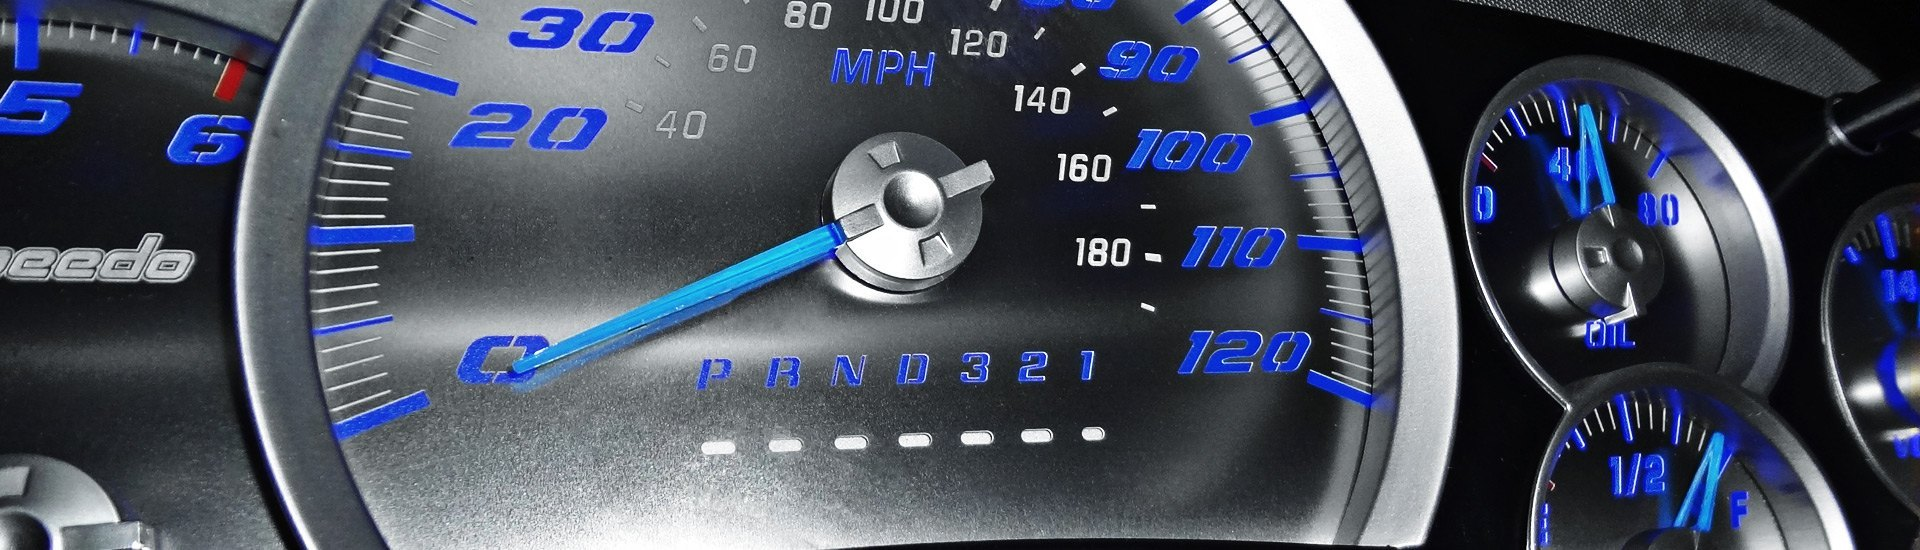 Gauges & Dashboards | Pressure, Boost, Vacuum, Fuel, Oil